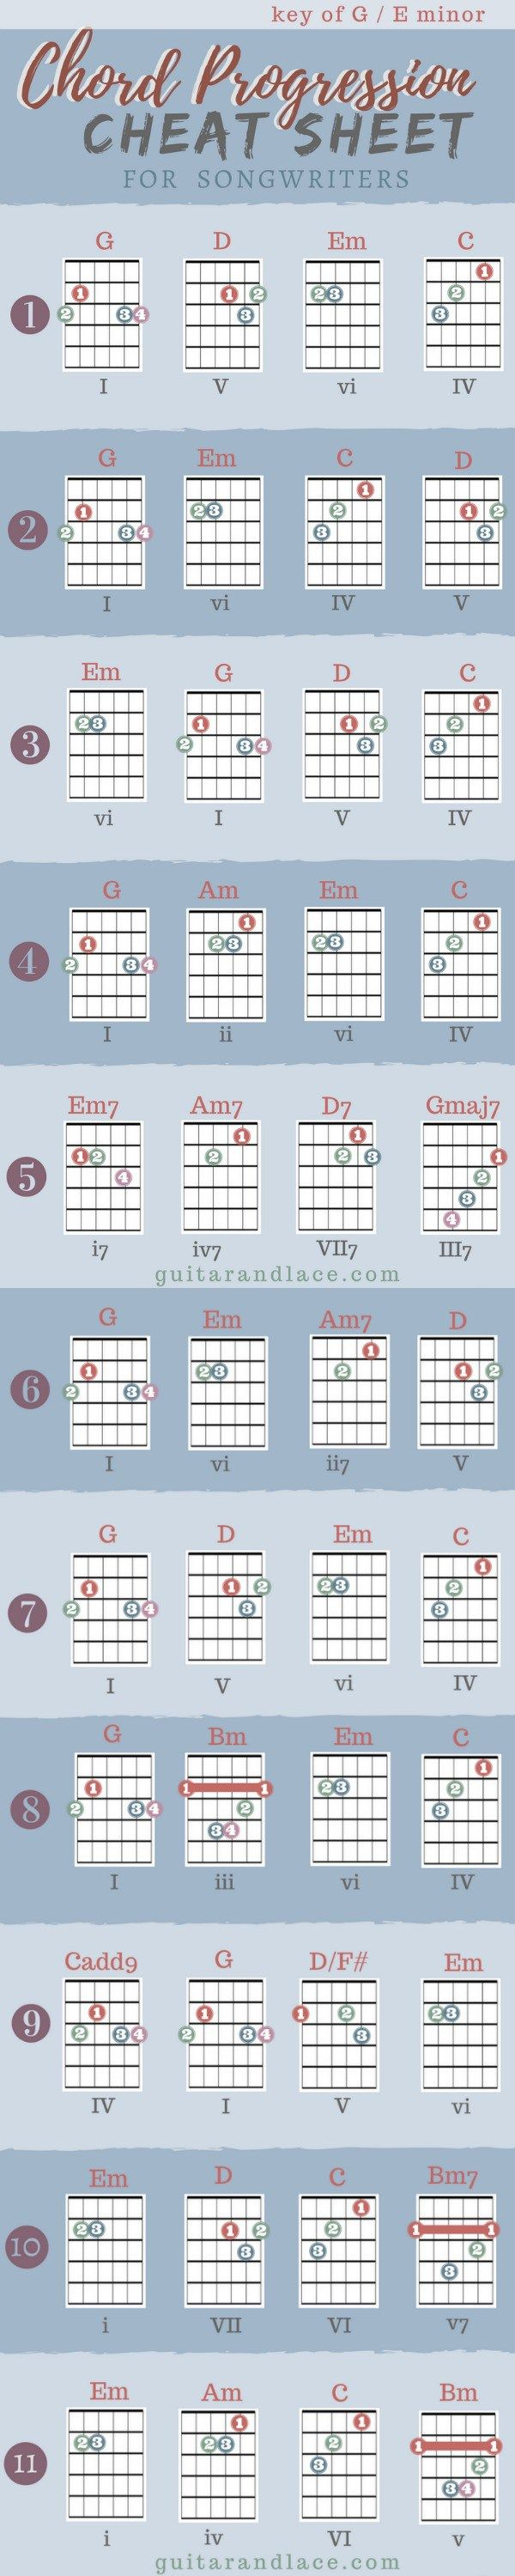 Free Songwriting cheat sheets! Guitar chord progressions, lyric tips, songwriting strategies